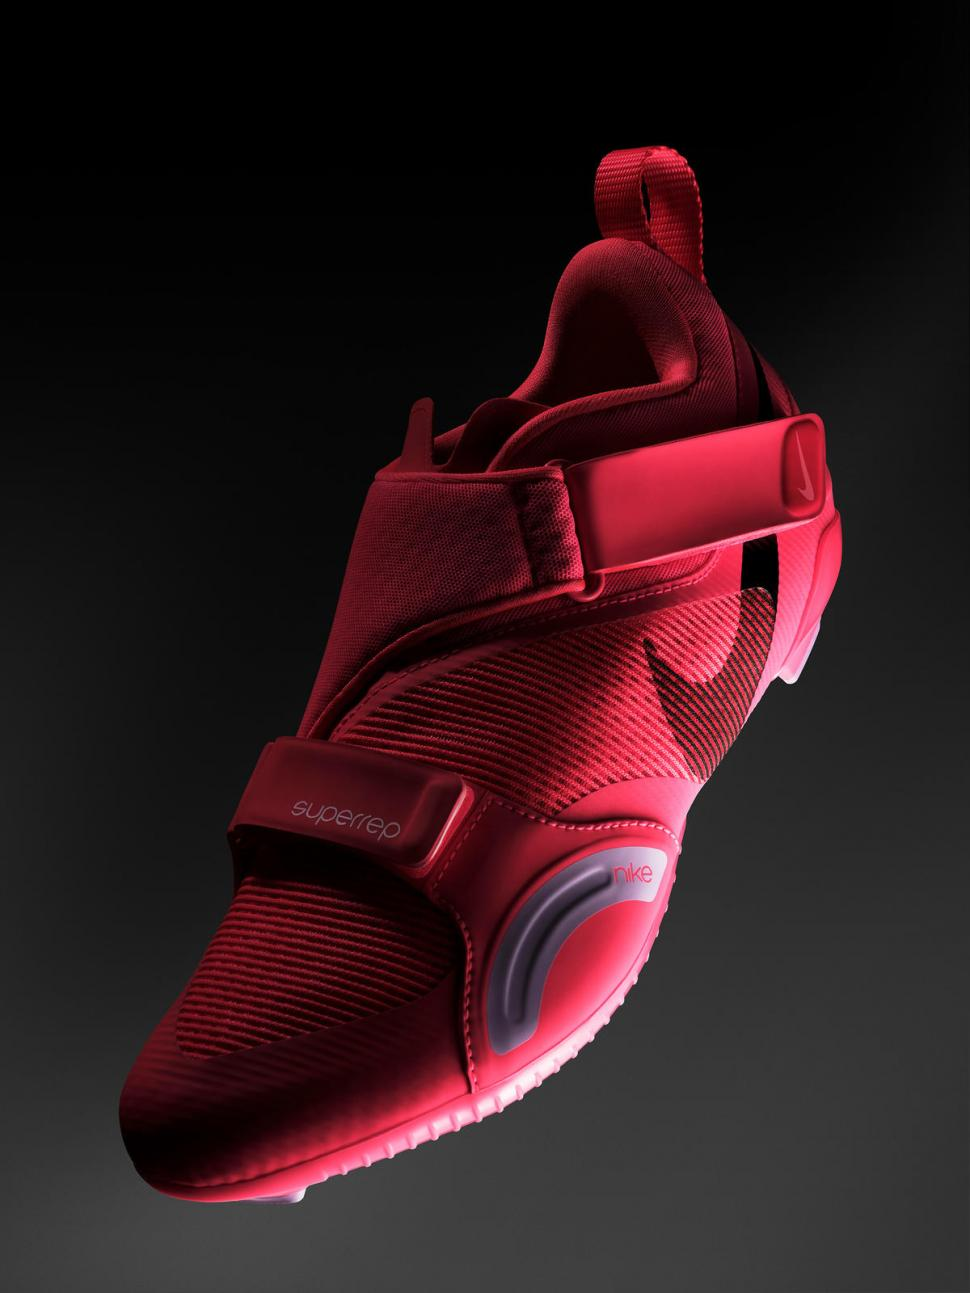 nike carbon cycling shoes